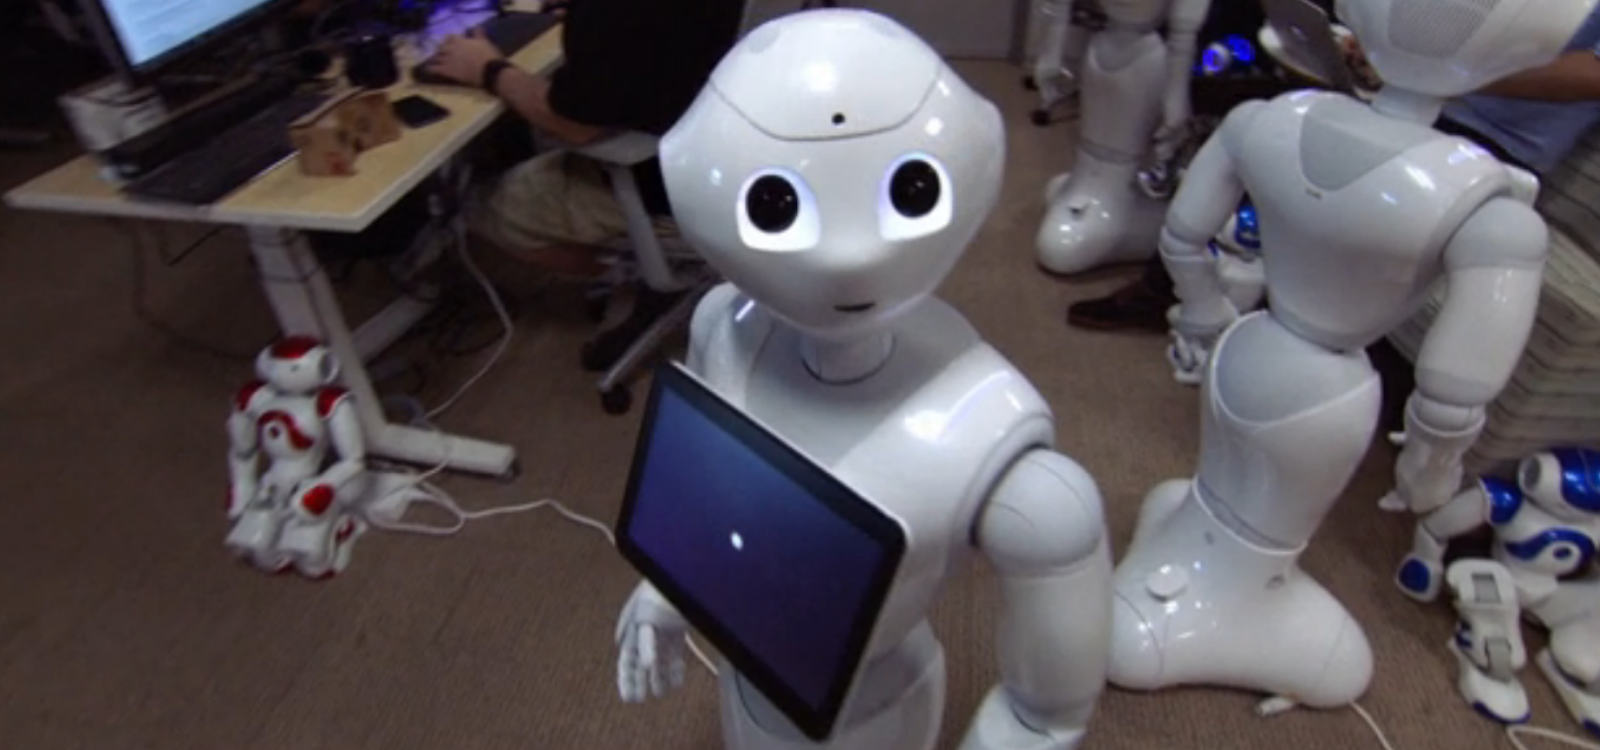 IBM Pepper robot with Watson AI